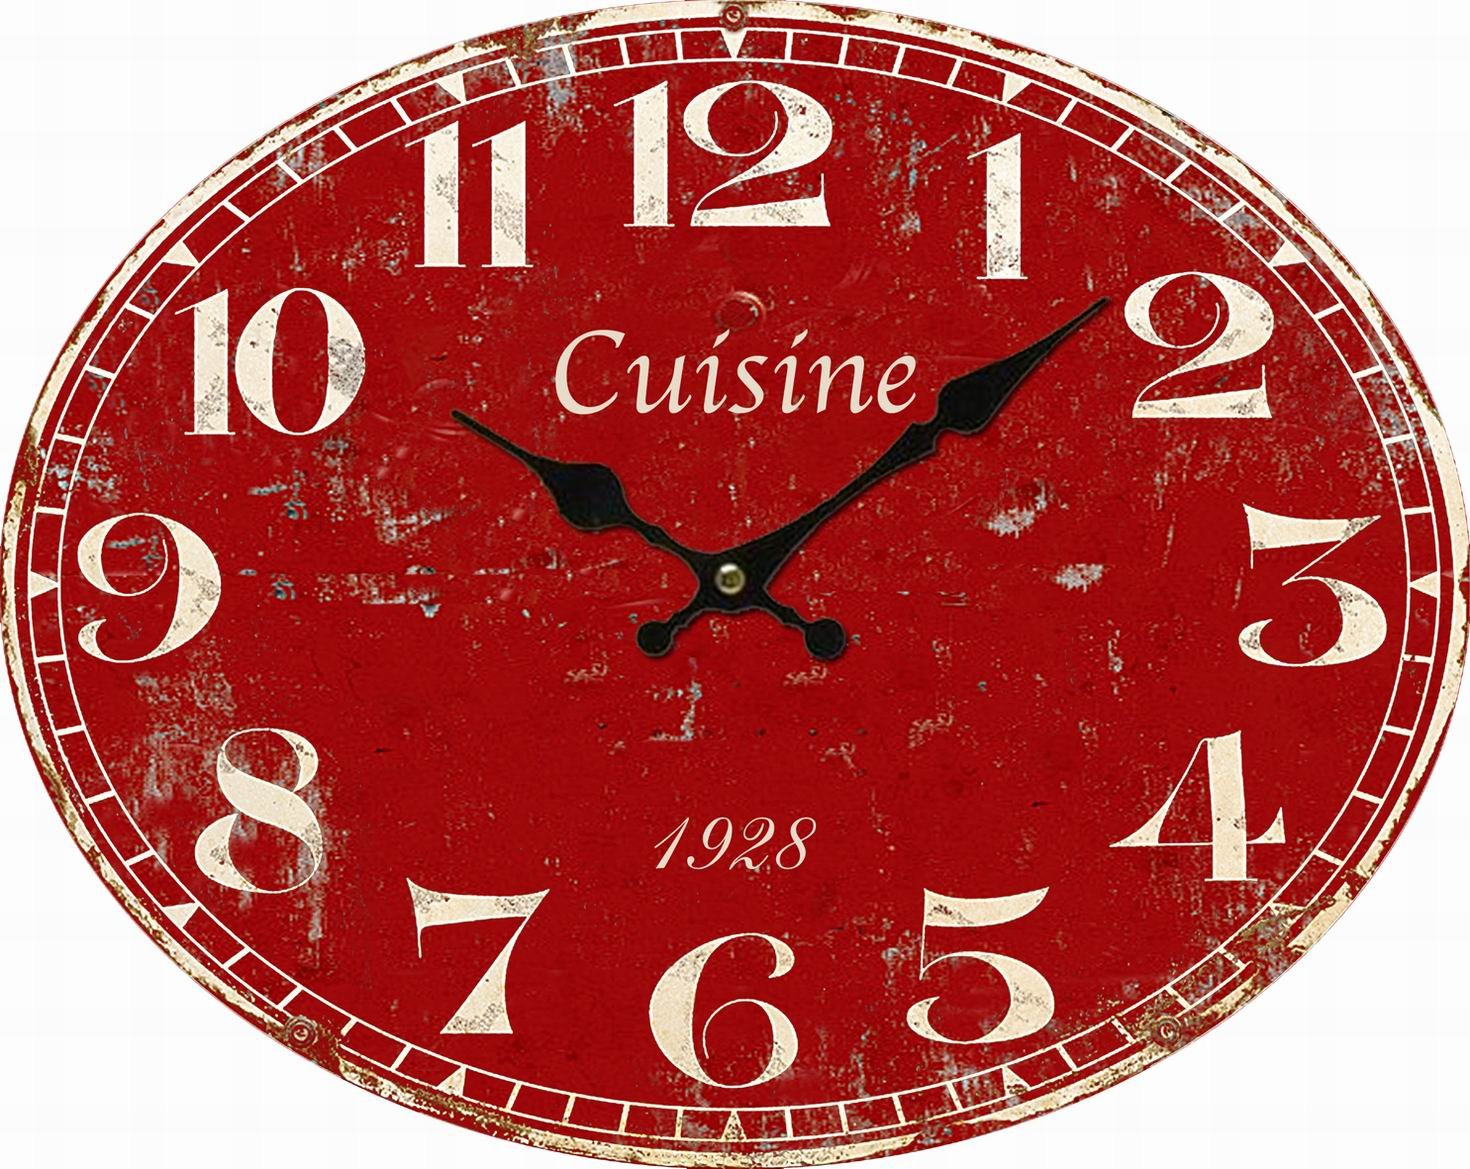 119 horloge de cuisine rouge horloge indus rouge sirius maisons du monde pendule murale. Black Bedroom Furniture Sets. Home Design Ideas